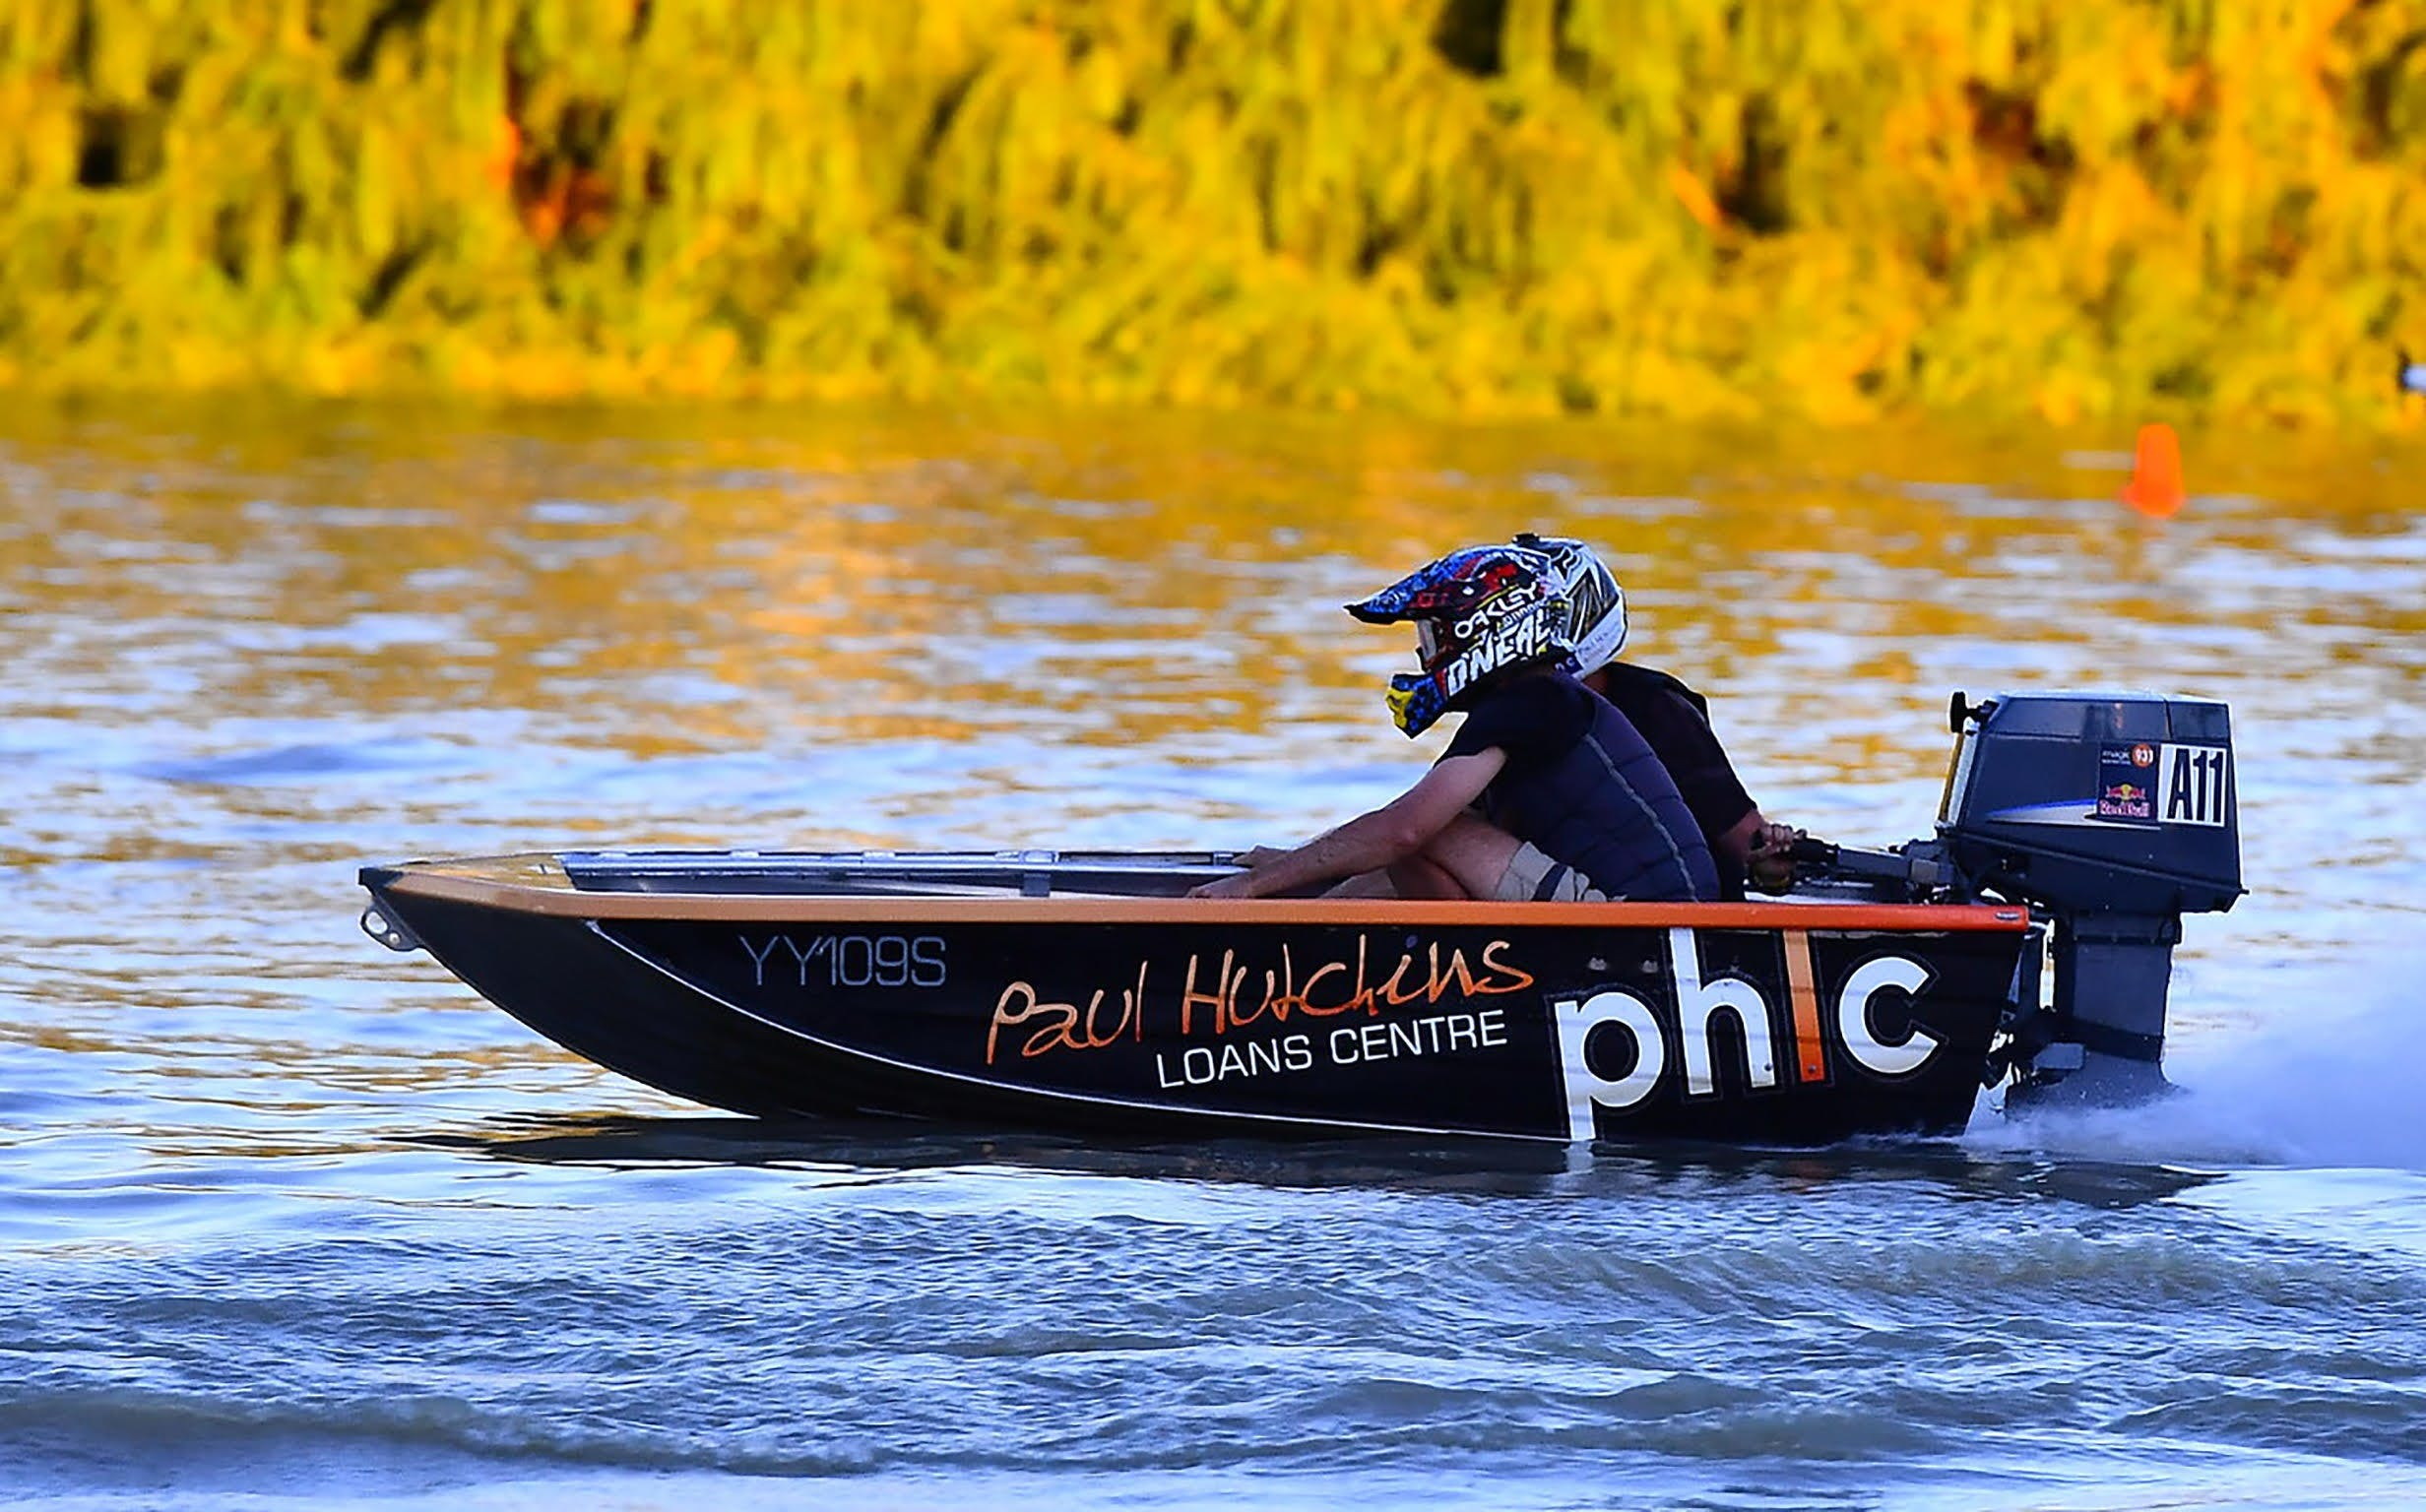 Round 6 Riverland Dinghy Club - The Paul Hutchins Loan Centre Hunchee Run - Hotel Accommodation